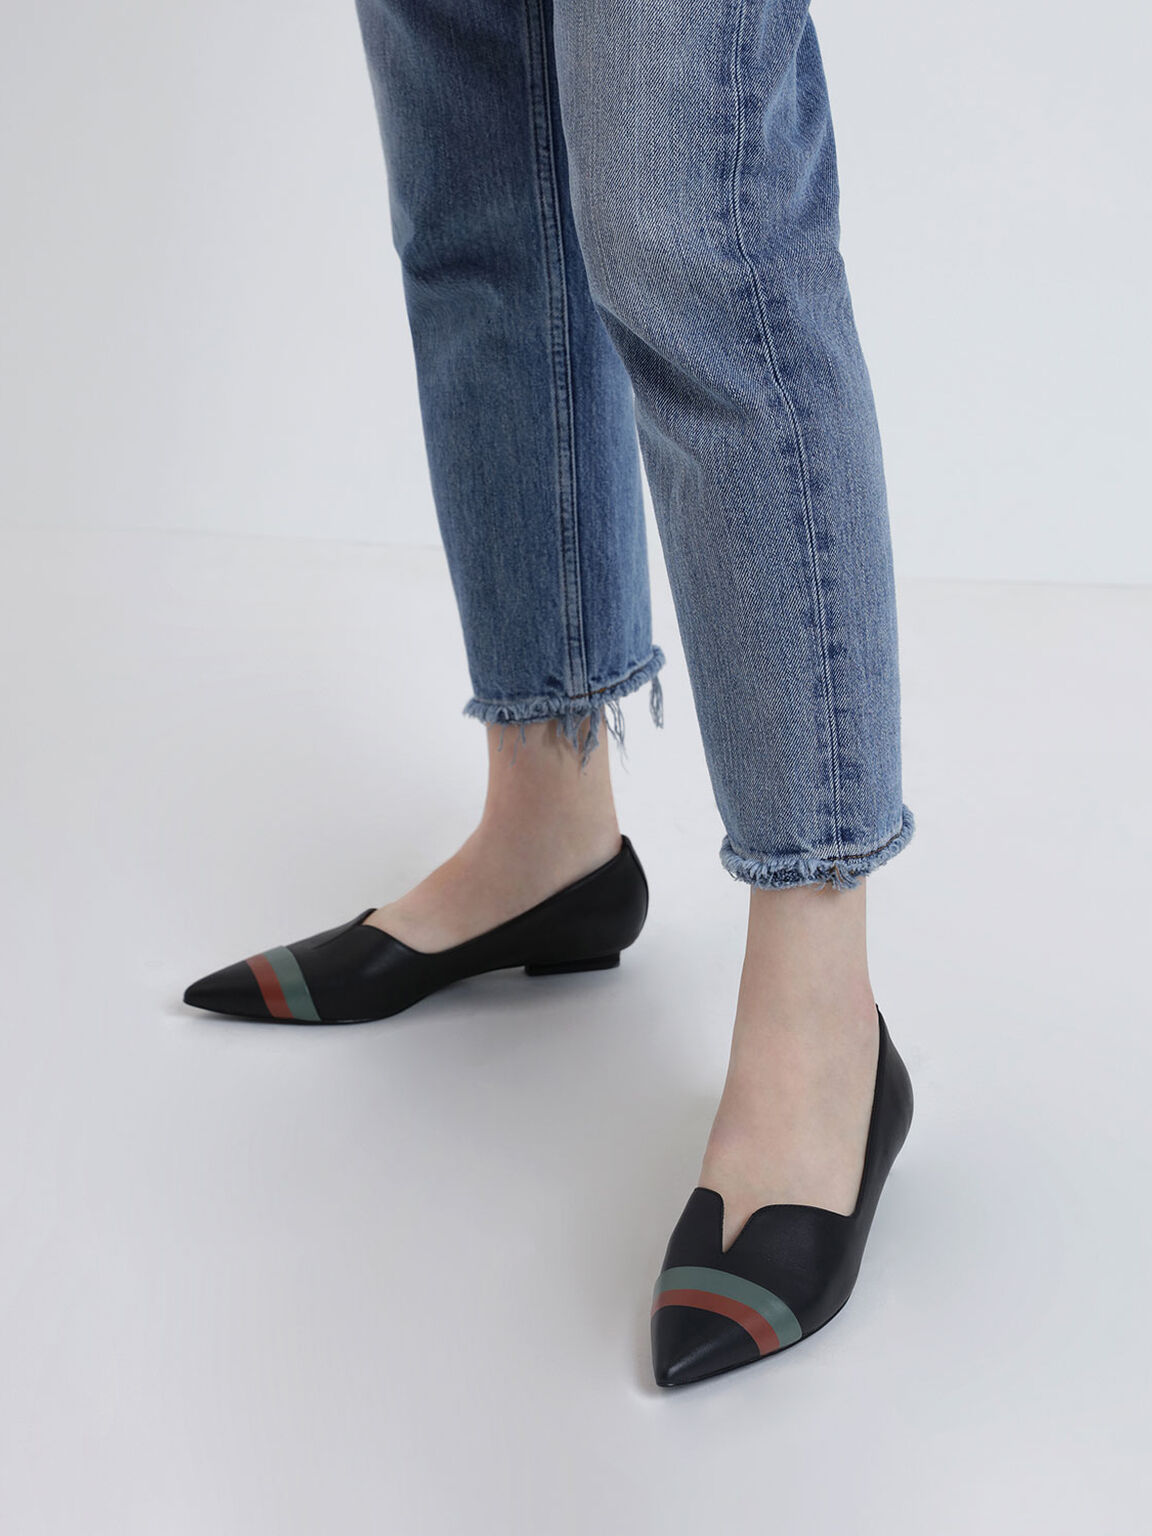 Striped Leather Ballerina Flats, Black, hi-res